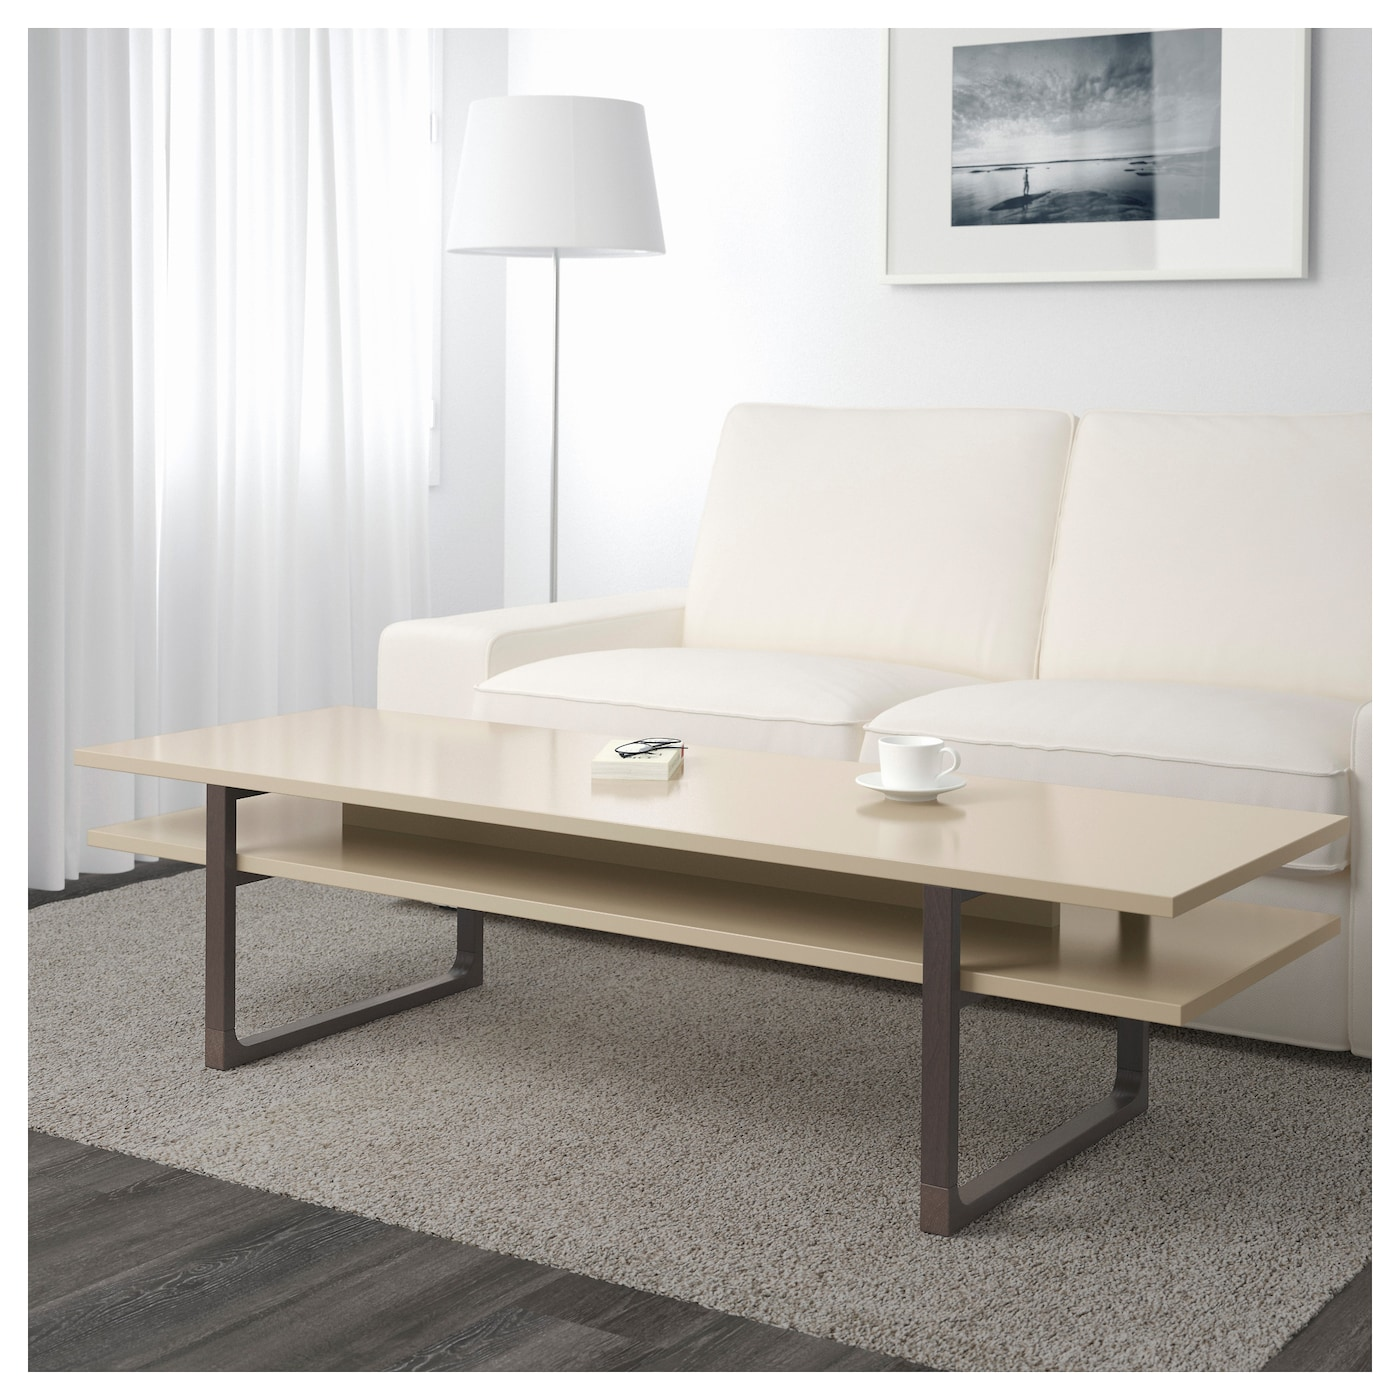 rissna coffee table beige 160x55 cm ikea. Black Bedroom Furniture Sets. Home Design Ideas